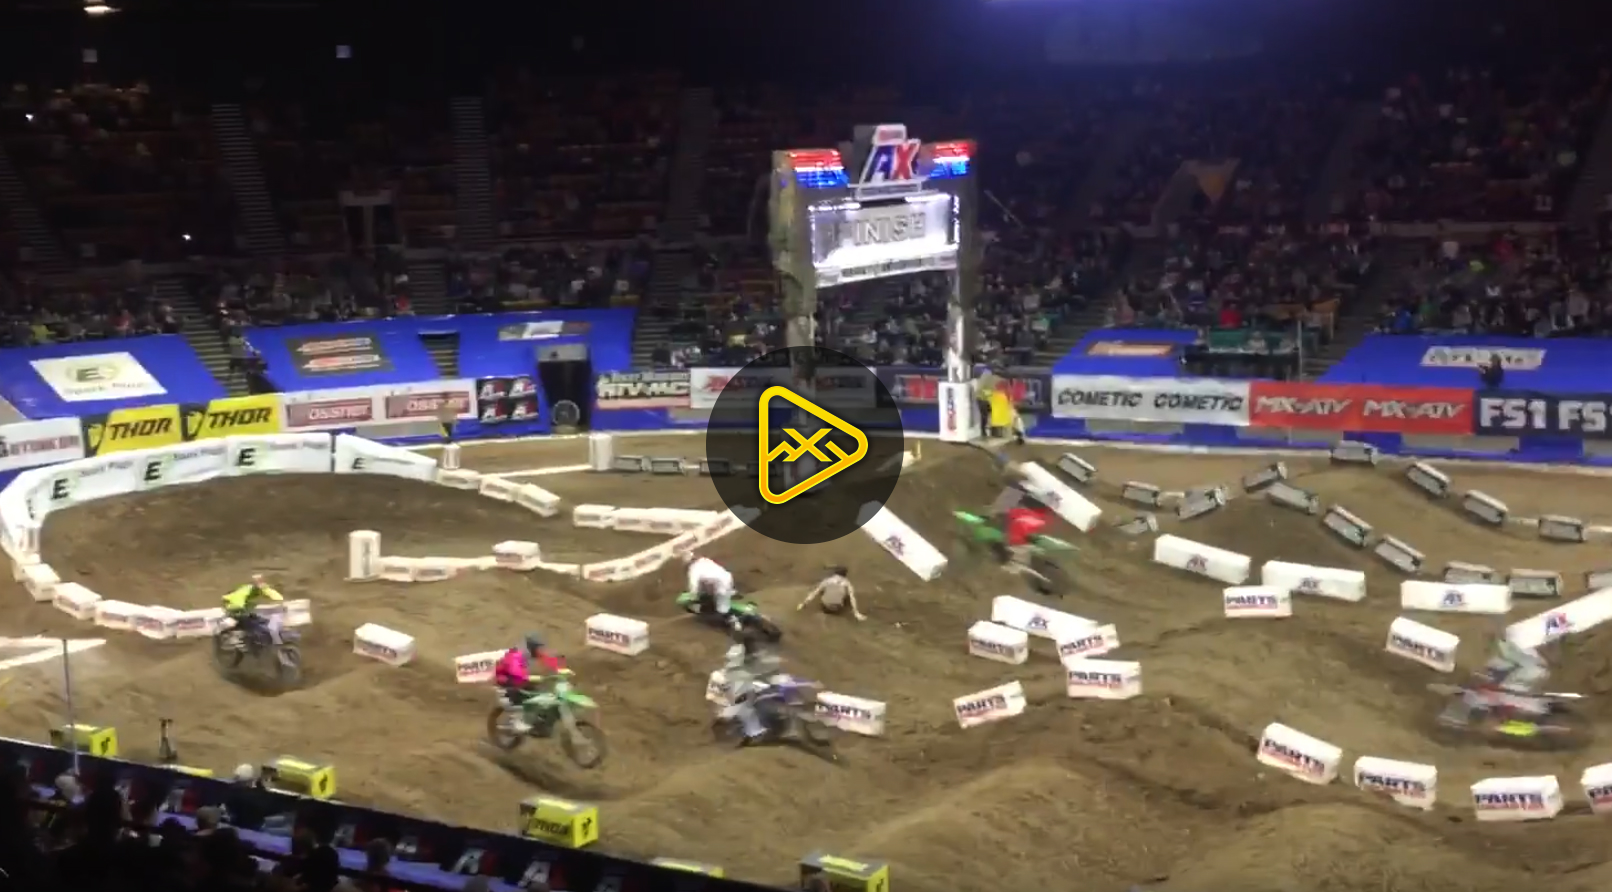 Track Worker T-Boned by Rider in AMSOIL Arenacross